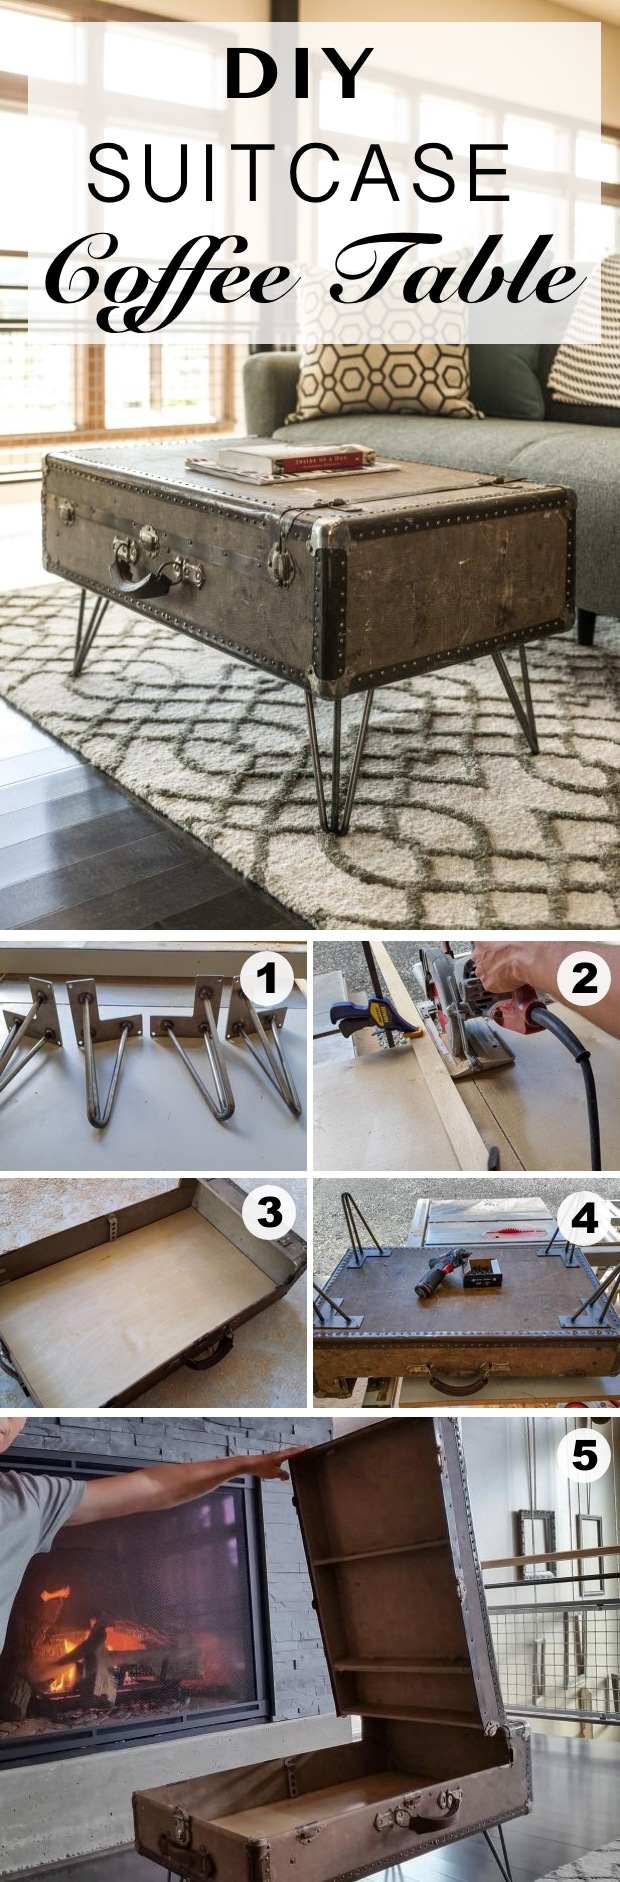 DIY Suitcase Coffee Table